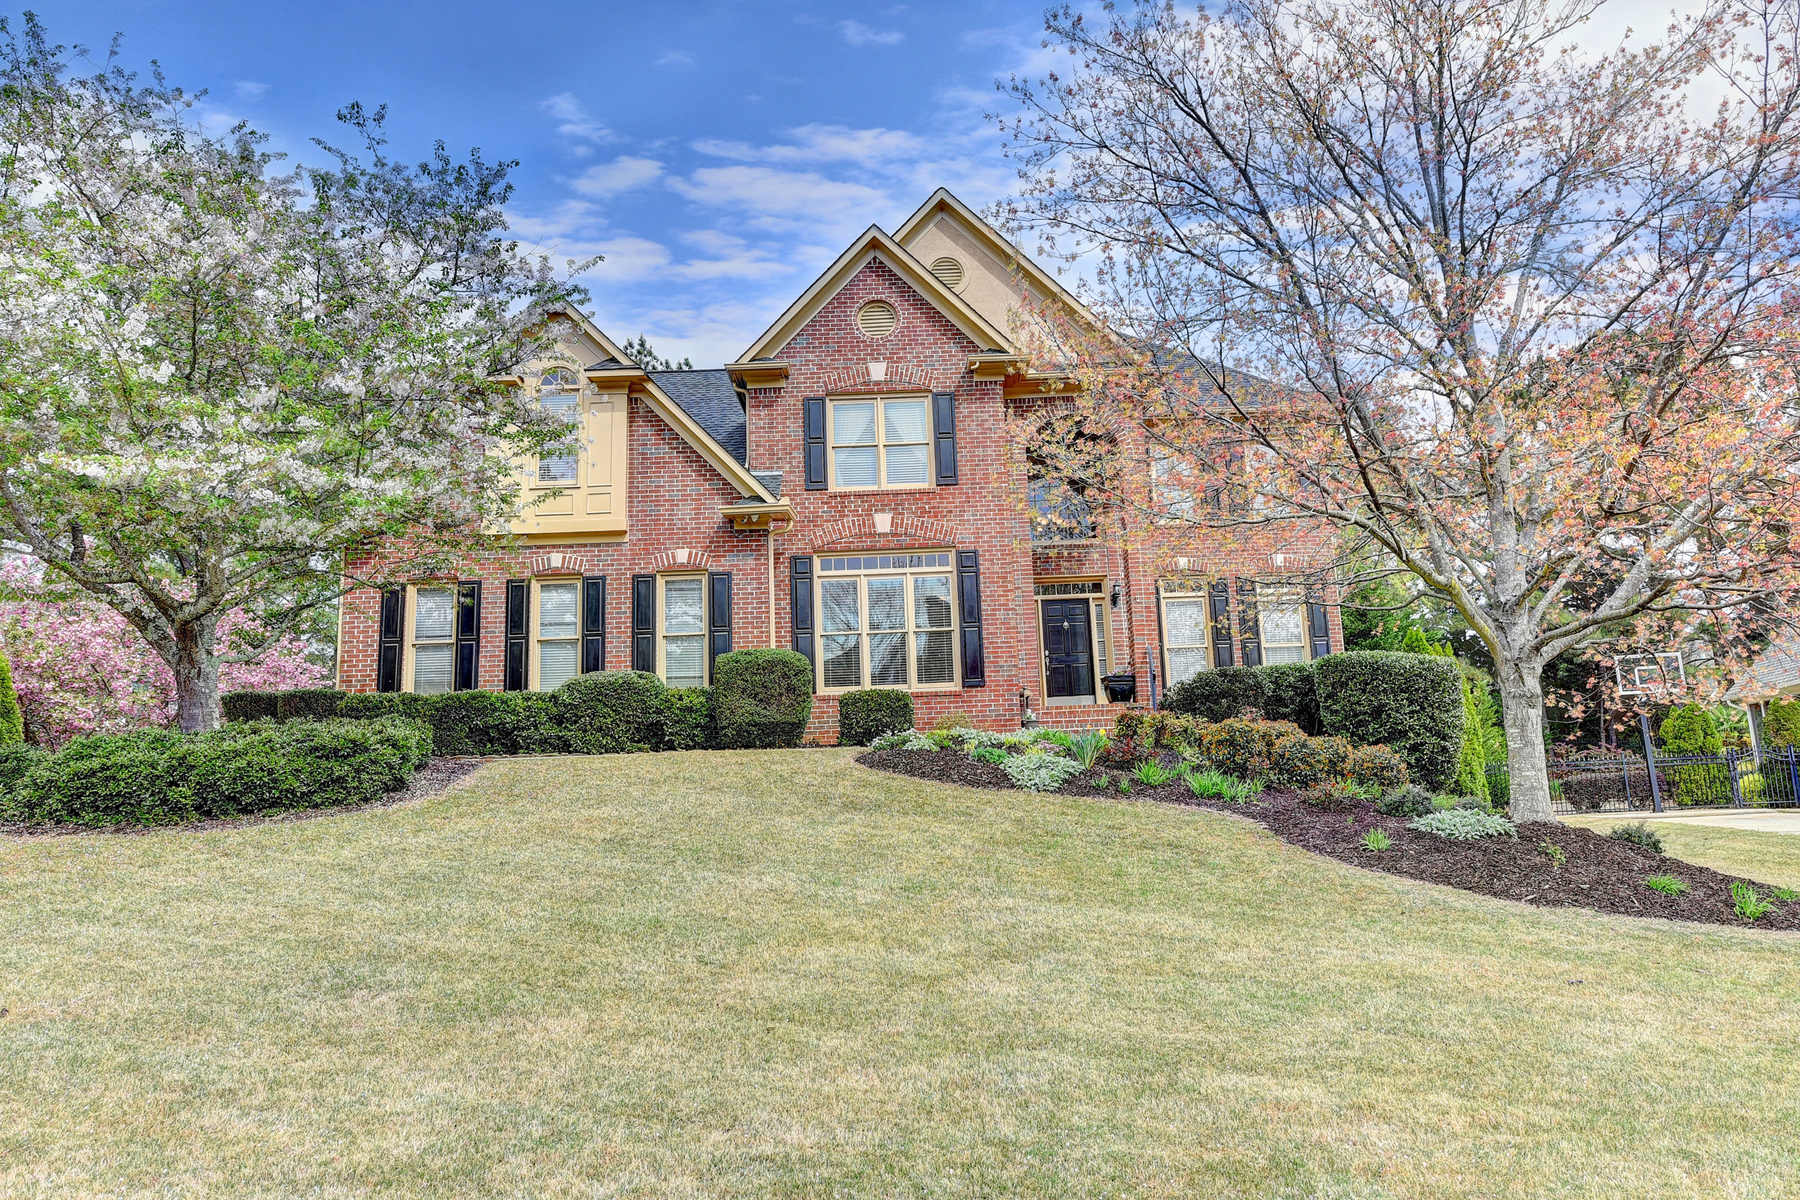 Wonderful Brick Home In Popular Cambridge! 535 Mellbrook Ln Johns Creek, Geórgia 30005 Estados Unidos